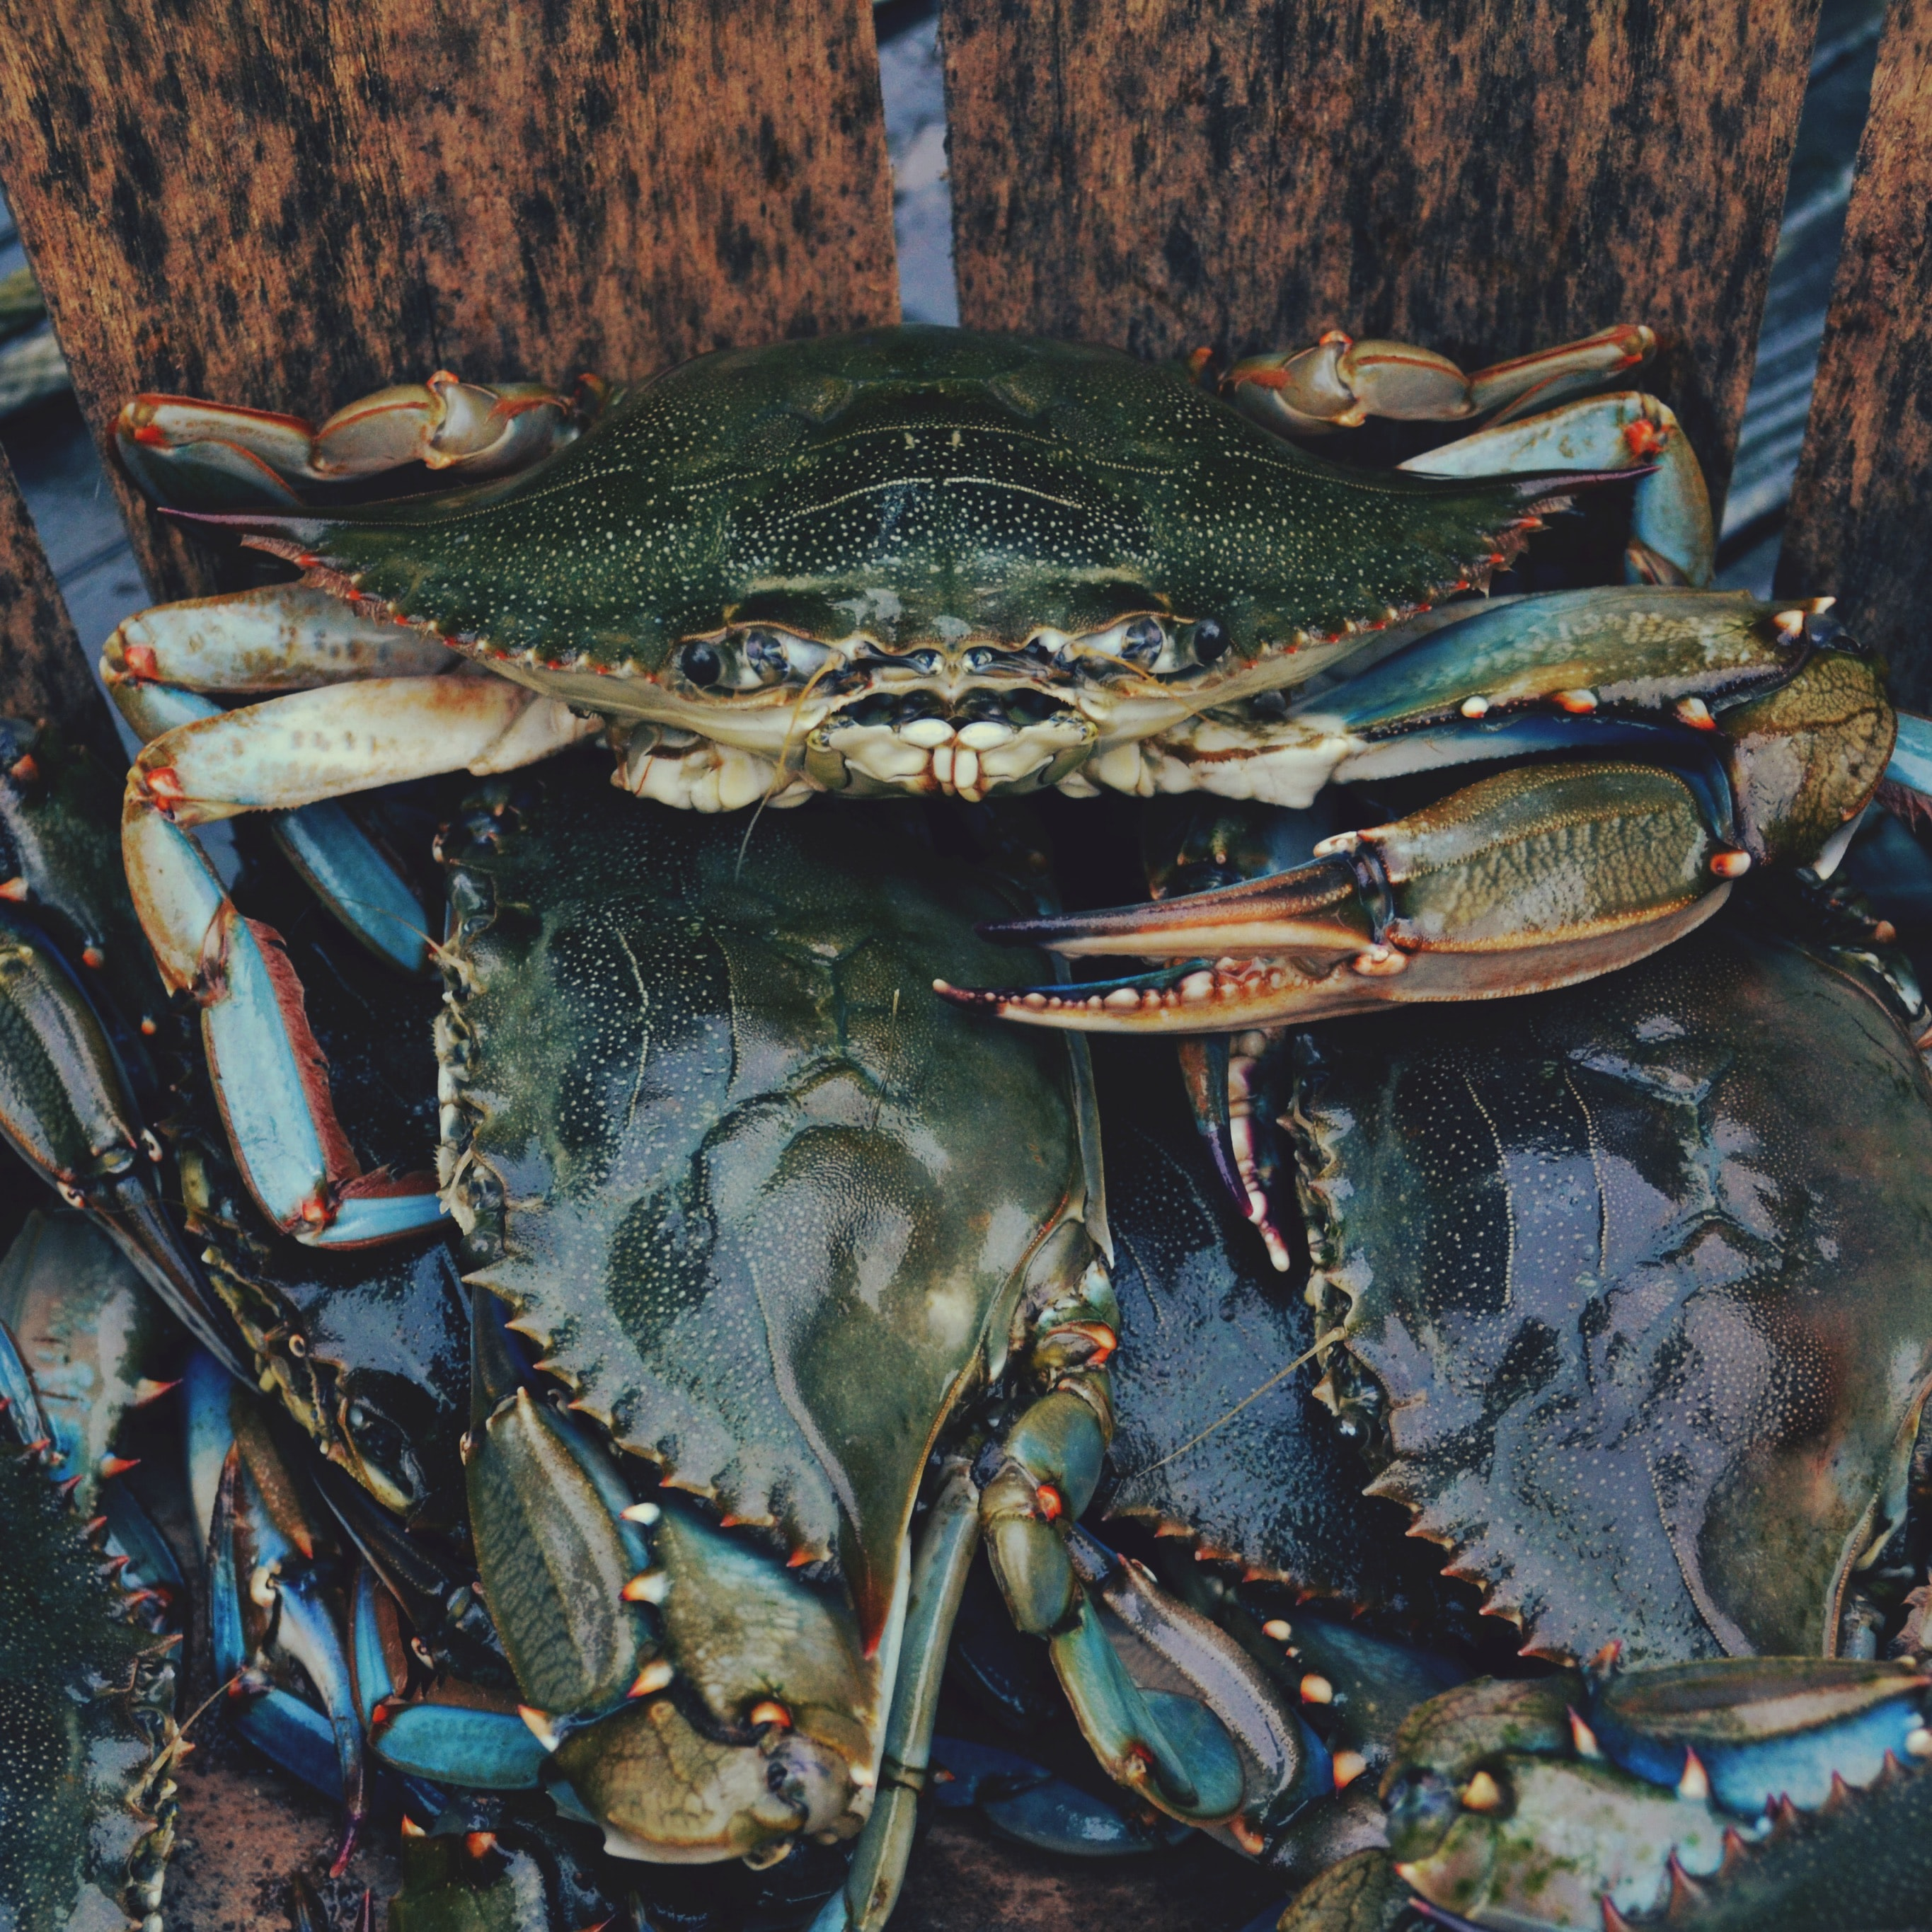 close up photography of crabs